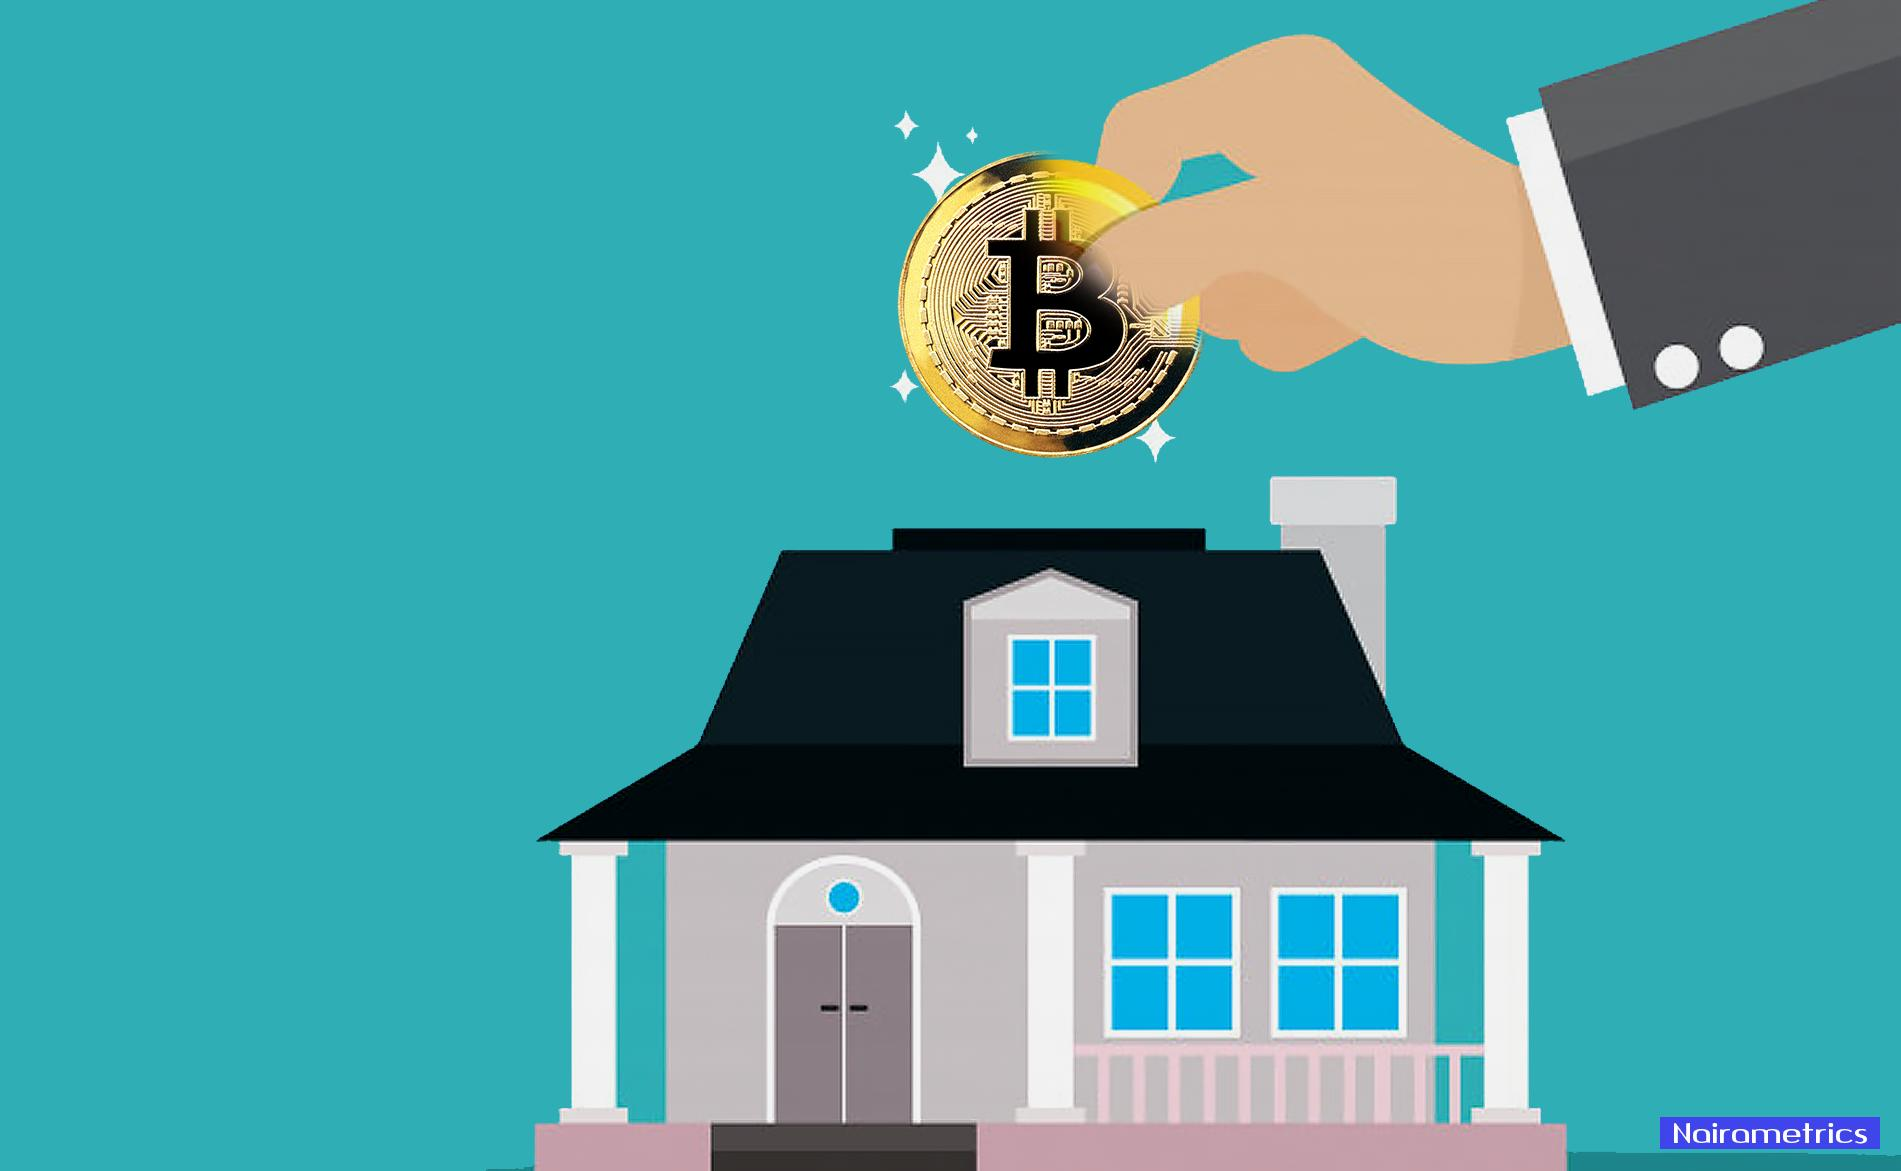 1 Bitcoin will buy you a house in Nigeria's rich suburb